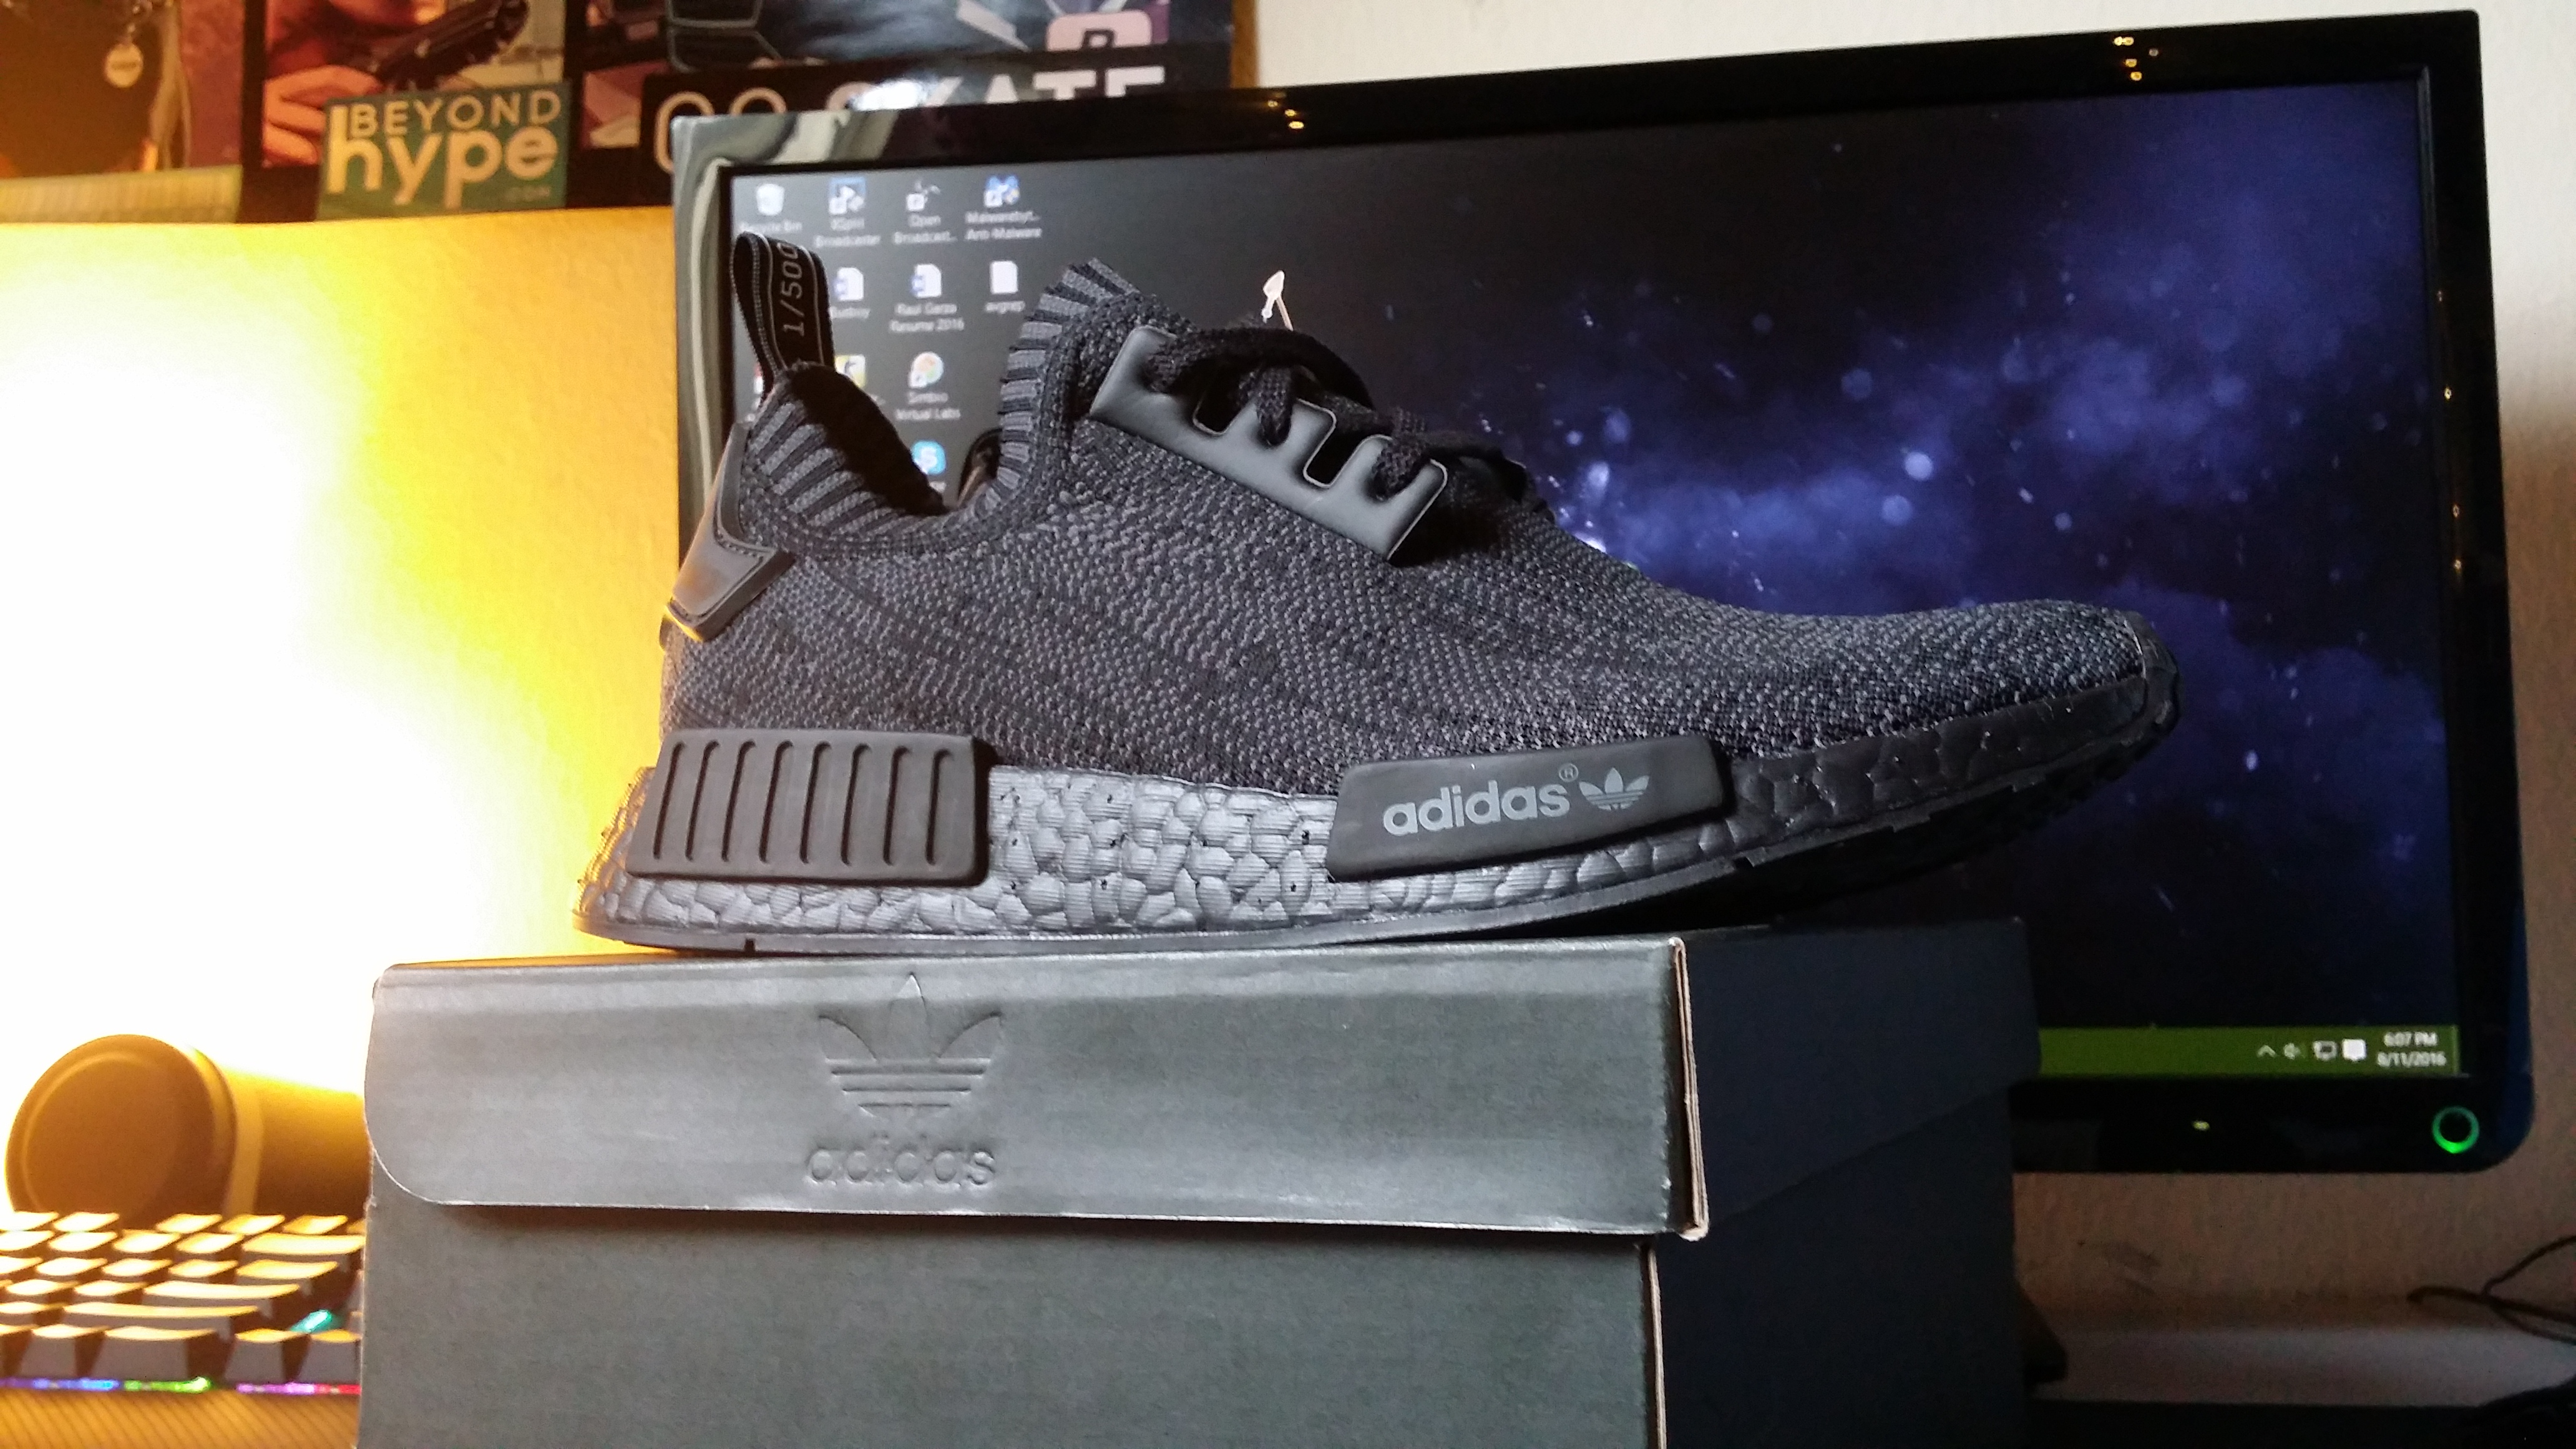 1eb339636ddf9 Adidas NMD Pitch Black Size 8 - Low-Top Sneakers for Sale - Grailed